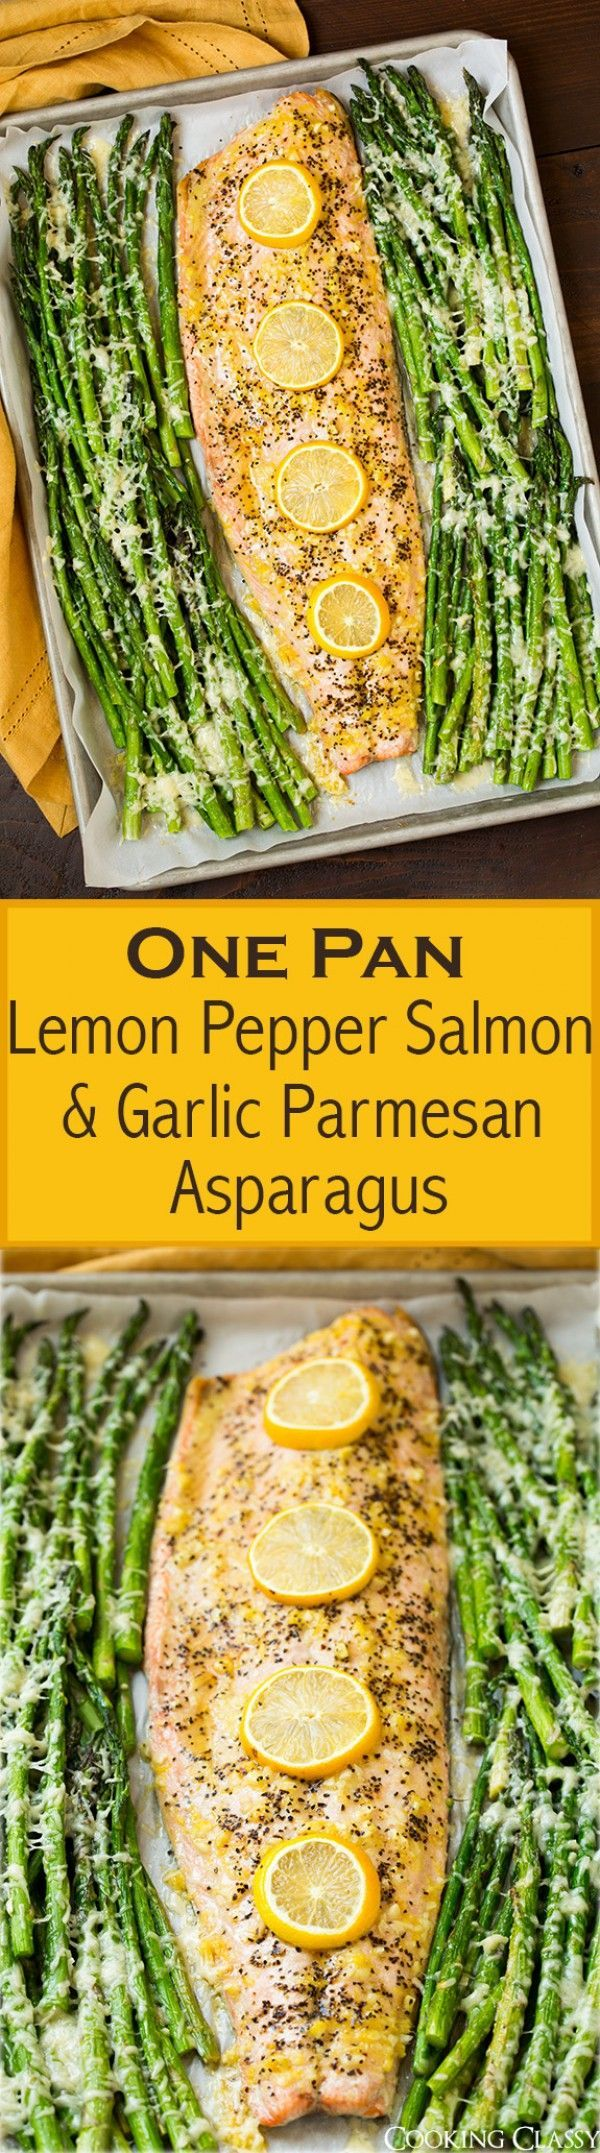 Get the recipe ♥ Lemon Pepper Salmon with Garlic Parmesan Asparagus @recipes_to_go